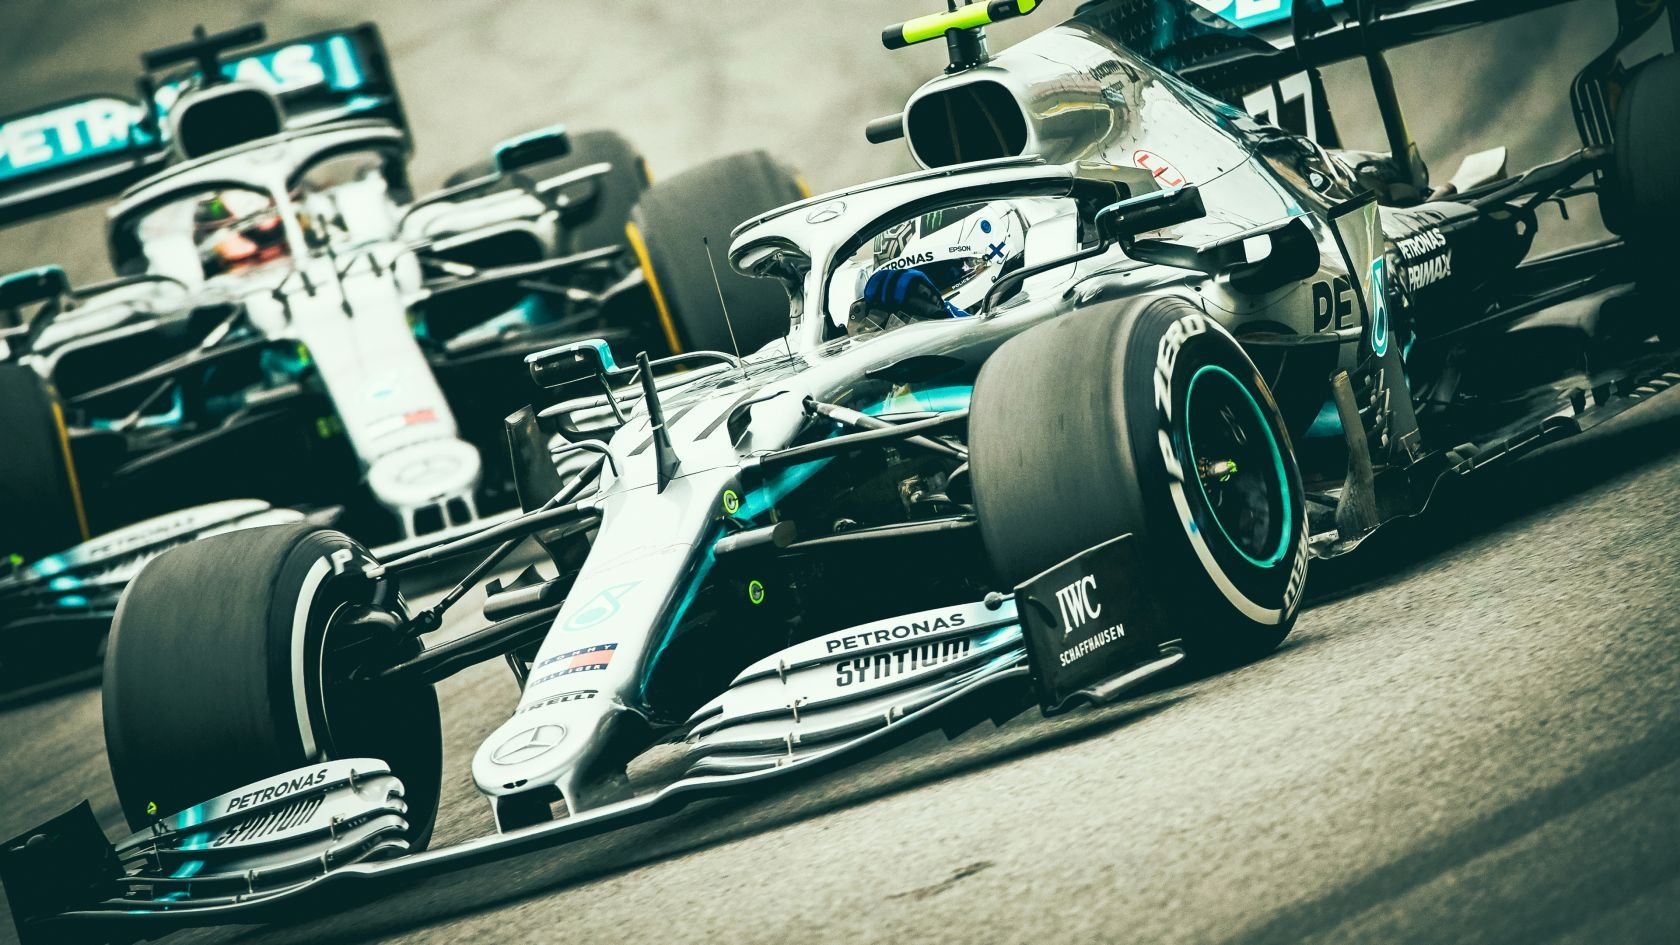 Reigning Formula 1 Champions Mercedes Amg F1 Have Taken Their 2020 Championship Contender The W11 Out On The Track For The Very First Time For A Shakedown Nel 2020